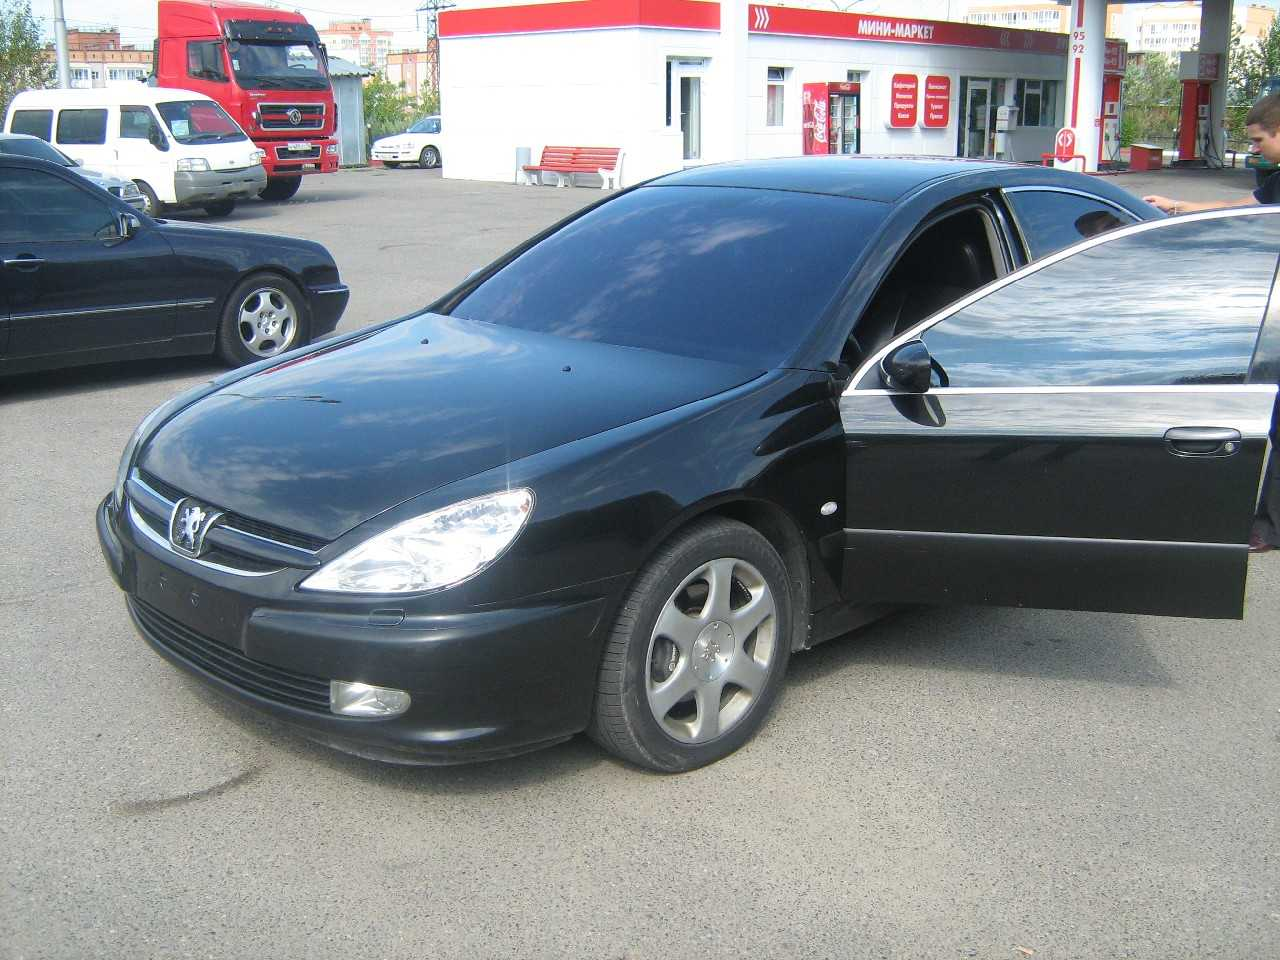 used 2003 peugeot 607 photos 3000cc gasoline ff automatic for sale. Black Bedroom Furniture Sets. Home Design Ideas